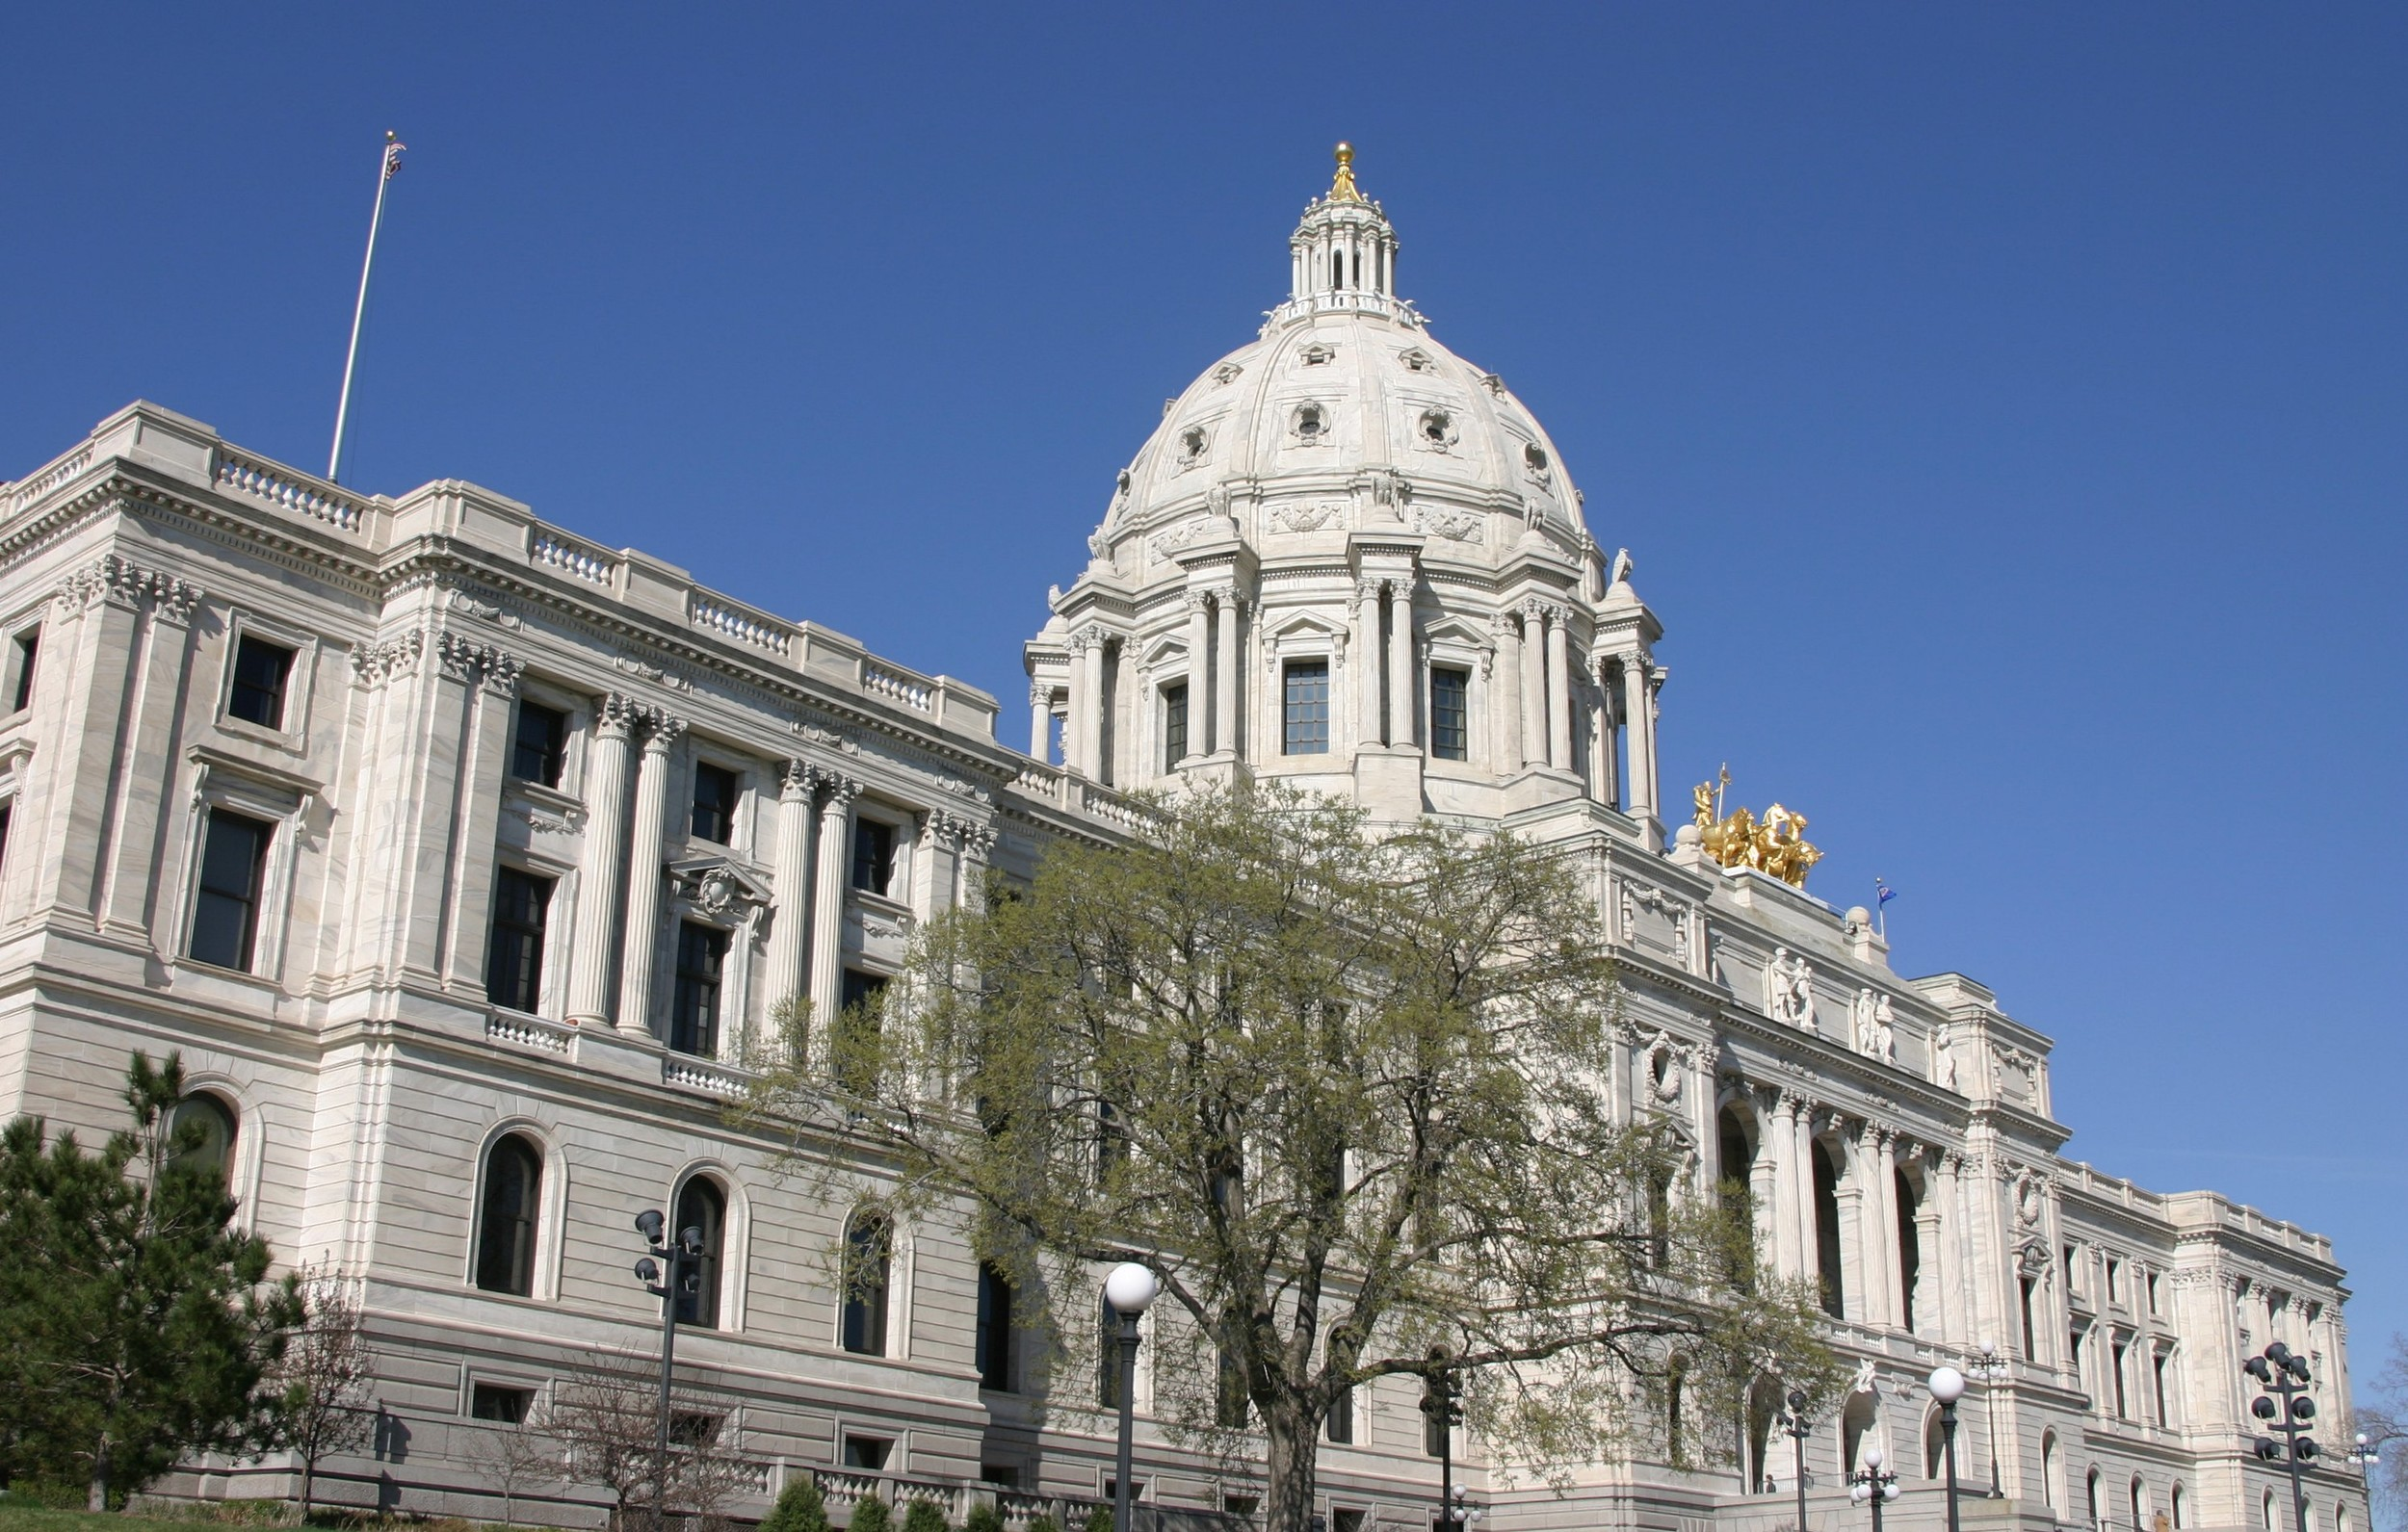 Legislation currently moving through the Legislature would substantially weaken environmental regulations in Minnesota.